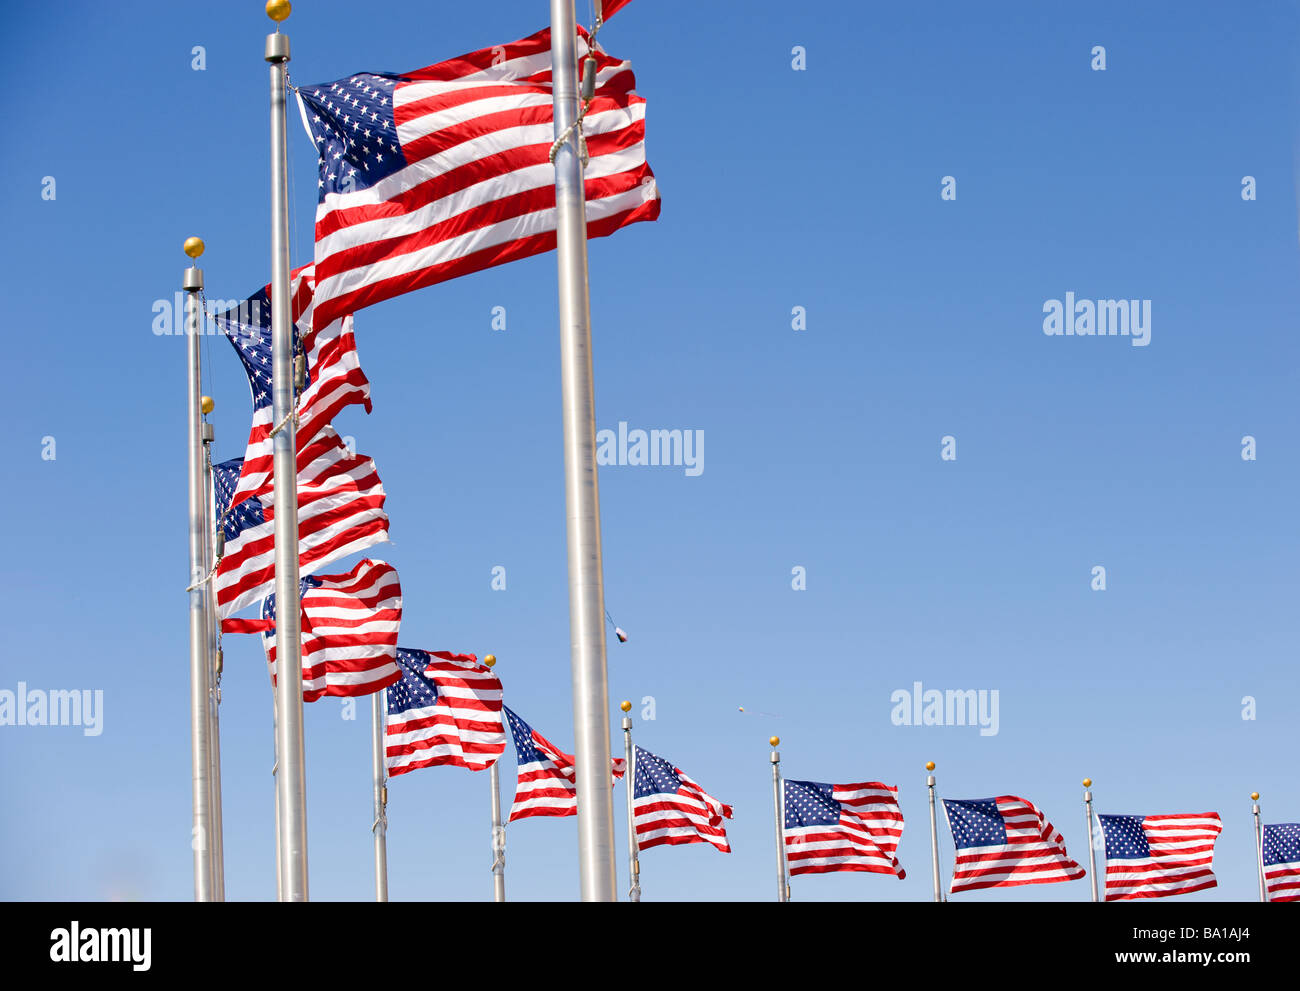 American flags at the Washington Monument form arc - Stock Image